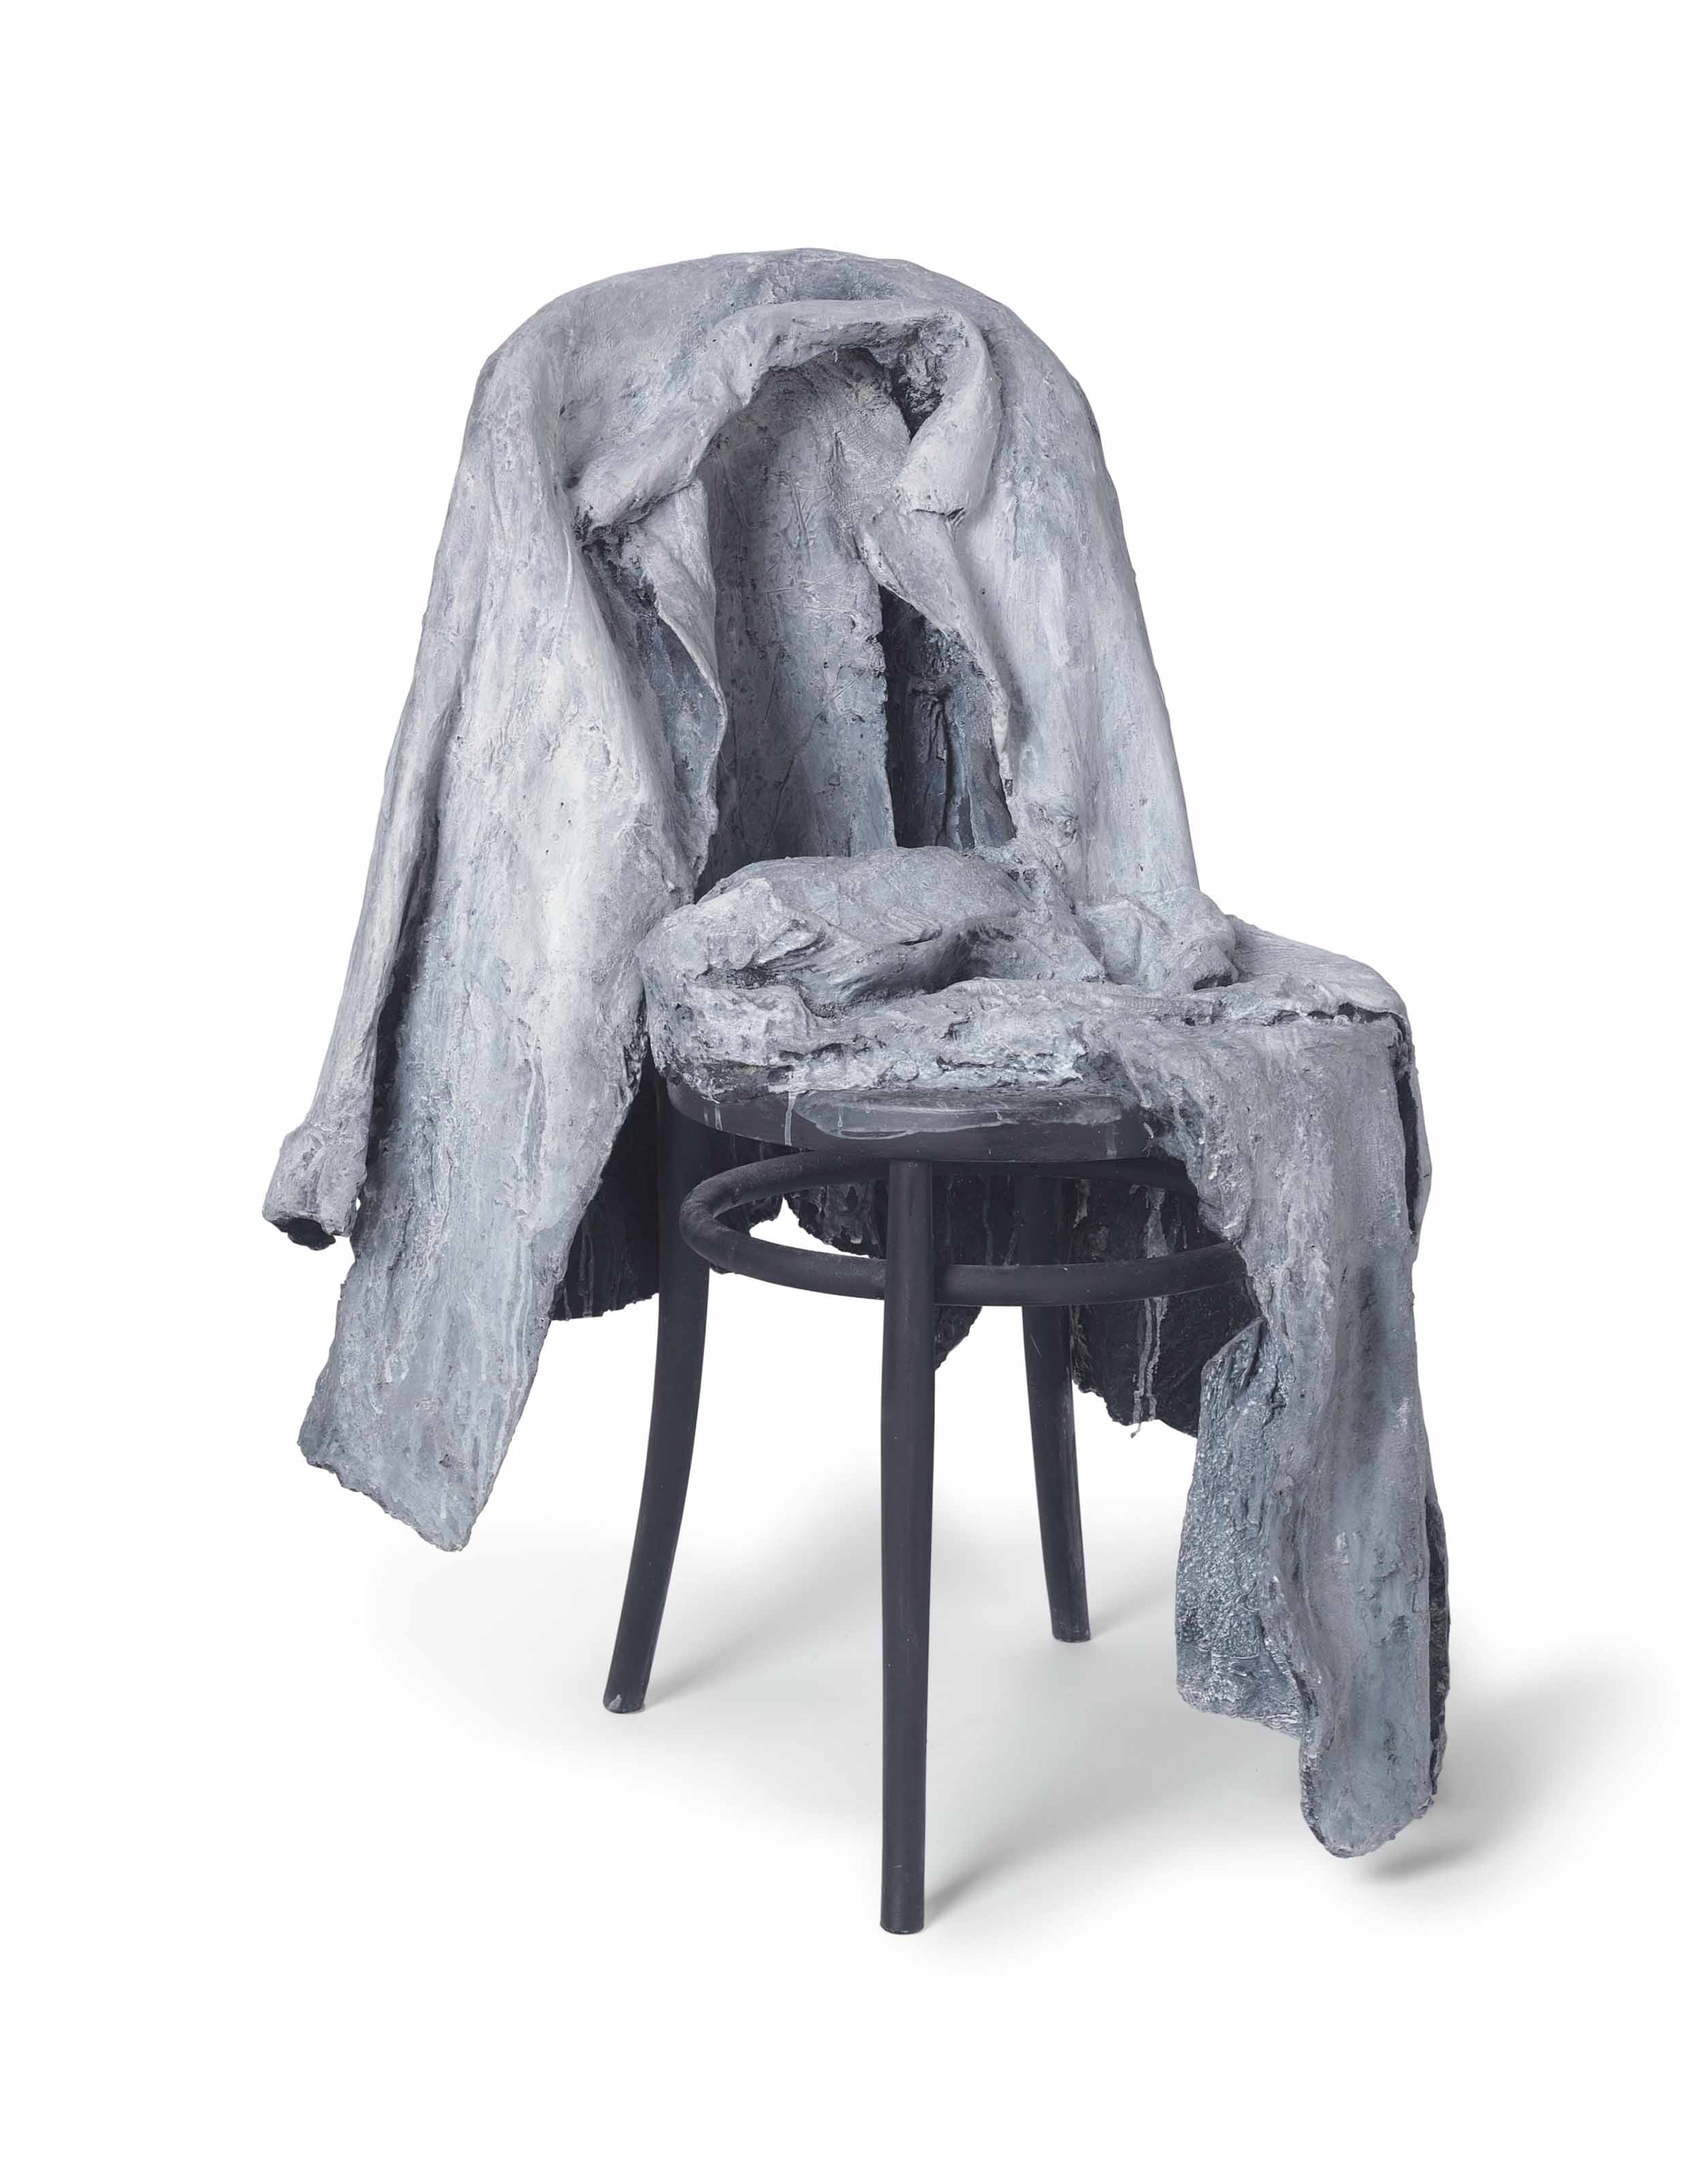 Chair Pants George Segal 1924 2000 Jacket Pants On Chair 20th Century